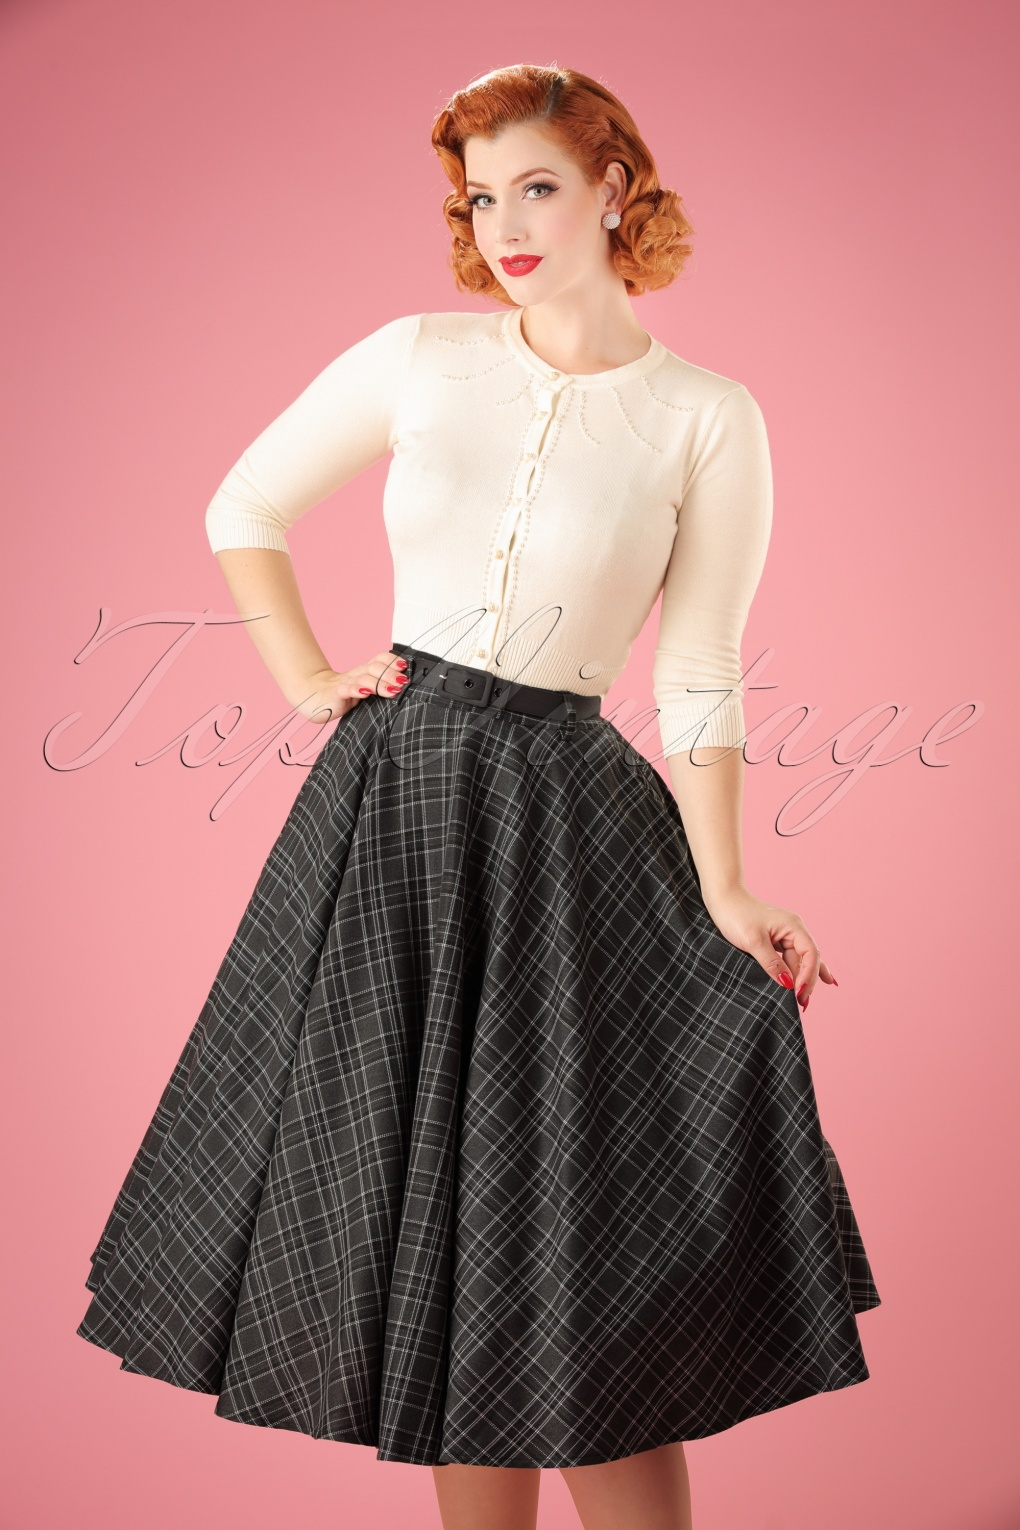 What Did Women Wear in the 1950s? 1950s Fashion Guide 50s Bridget Tartan Flare Skirt in Grey £43.48 AT vintagedancer.com